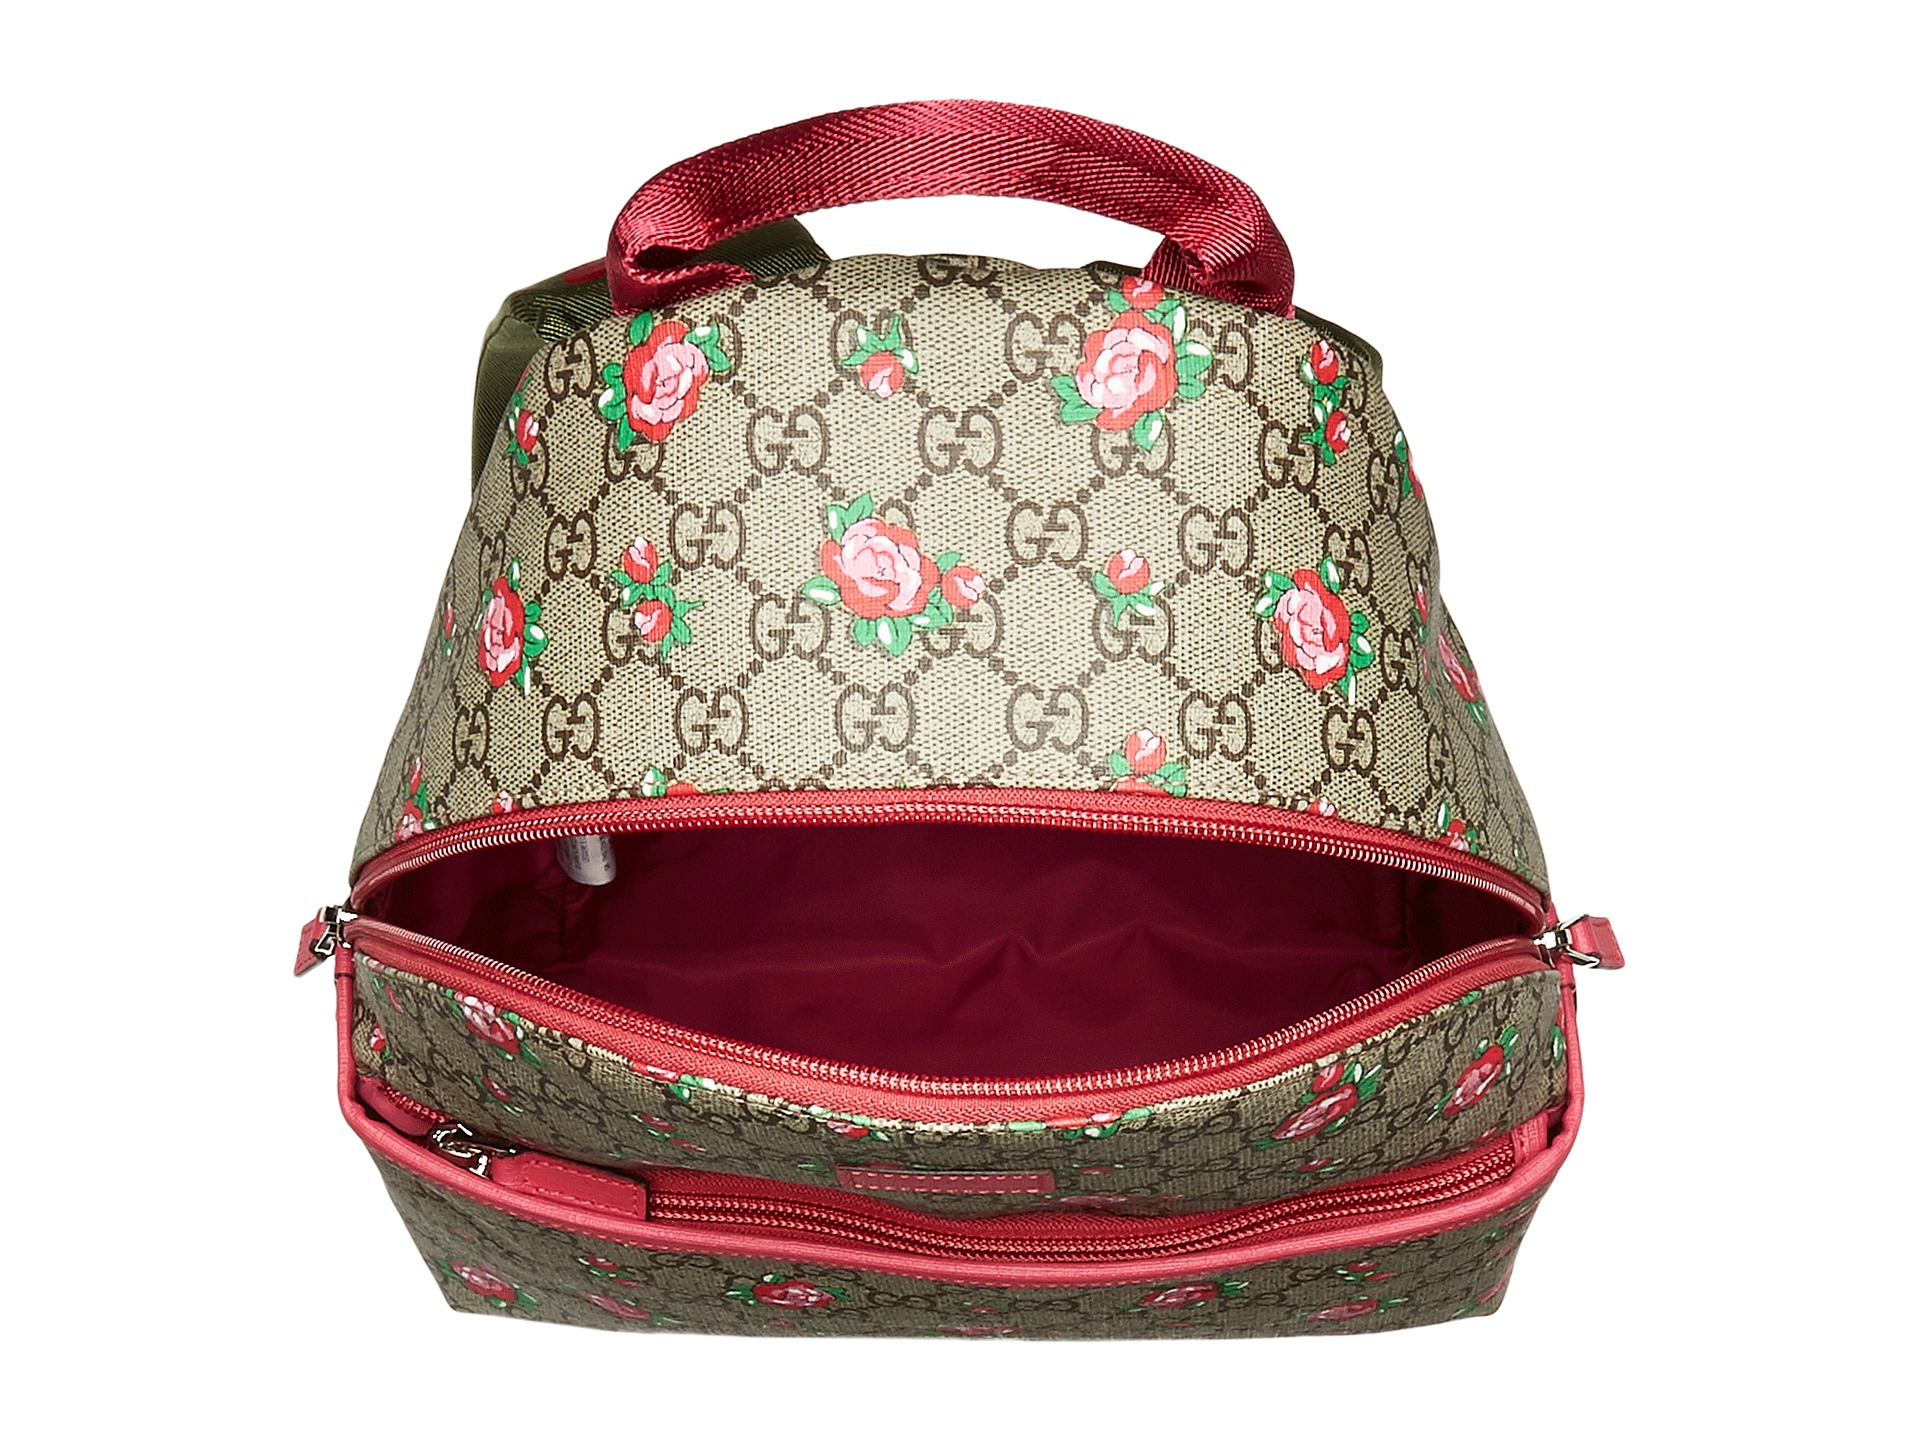 90 Best Gucci Kids images | Gucci kids, Children s ...